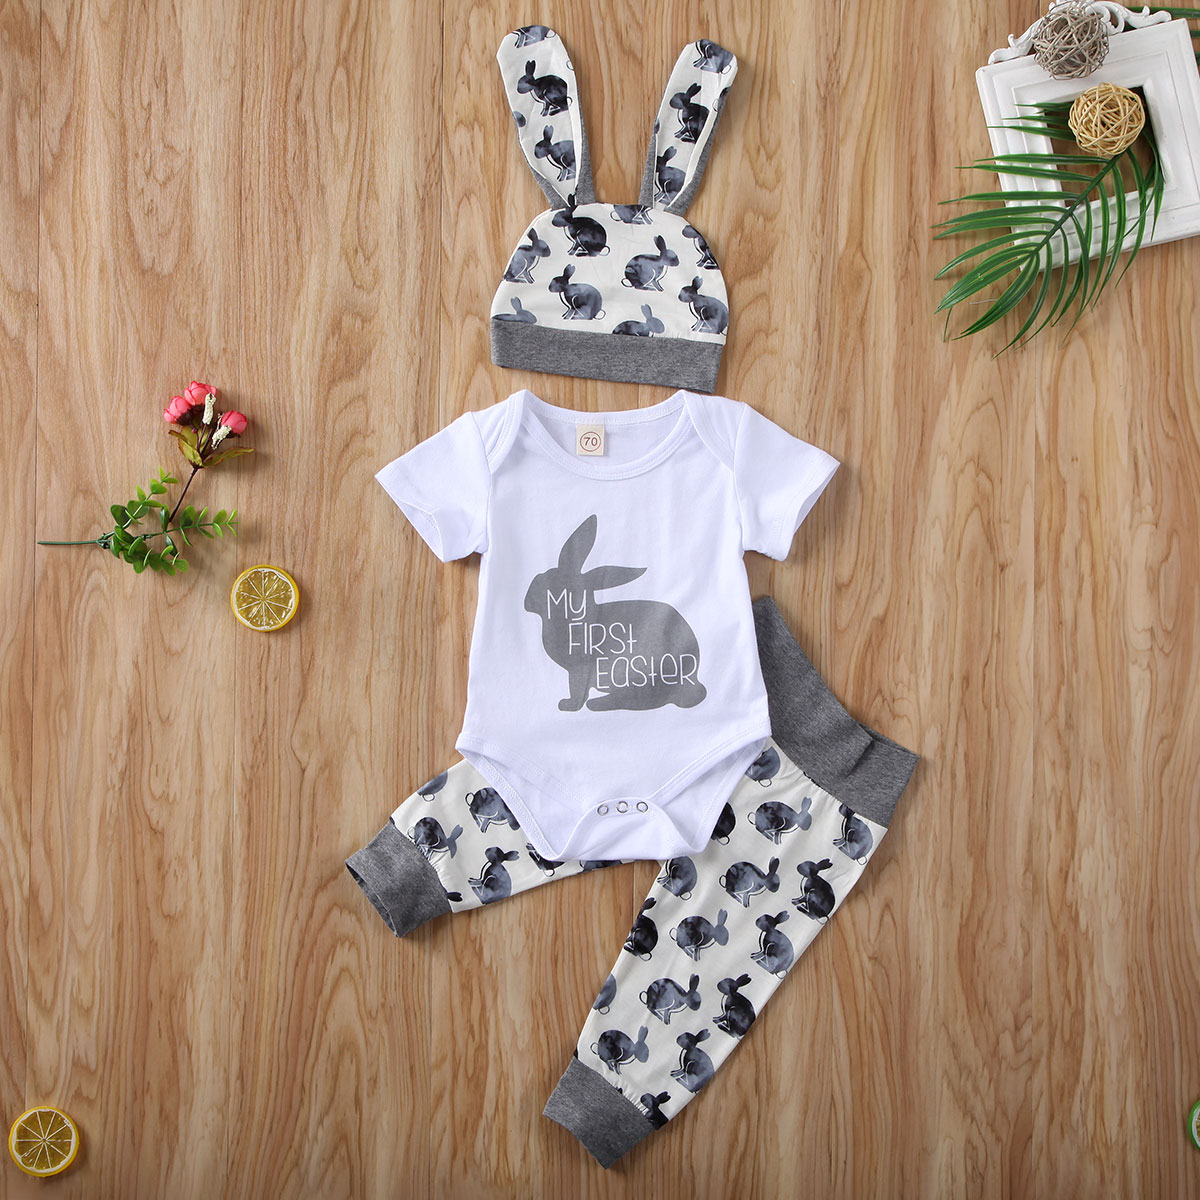 Pudcoco Newborn Baby Boy Girl Clothes My 1st Easter Print Romper Tops Long Pants Hat 3Pcs Outfits Cotton Clothes